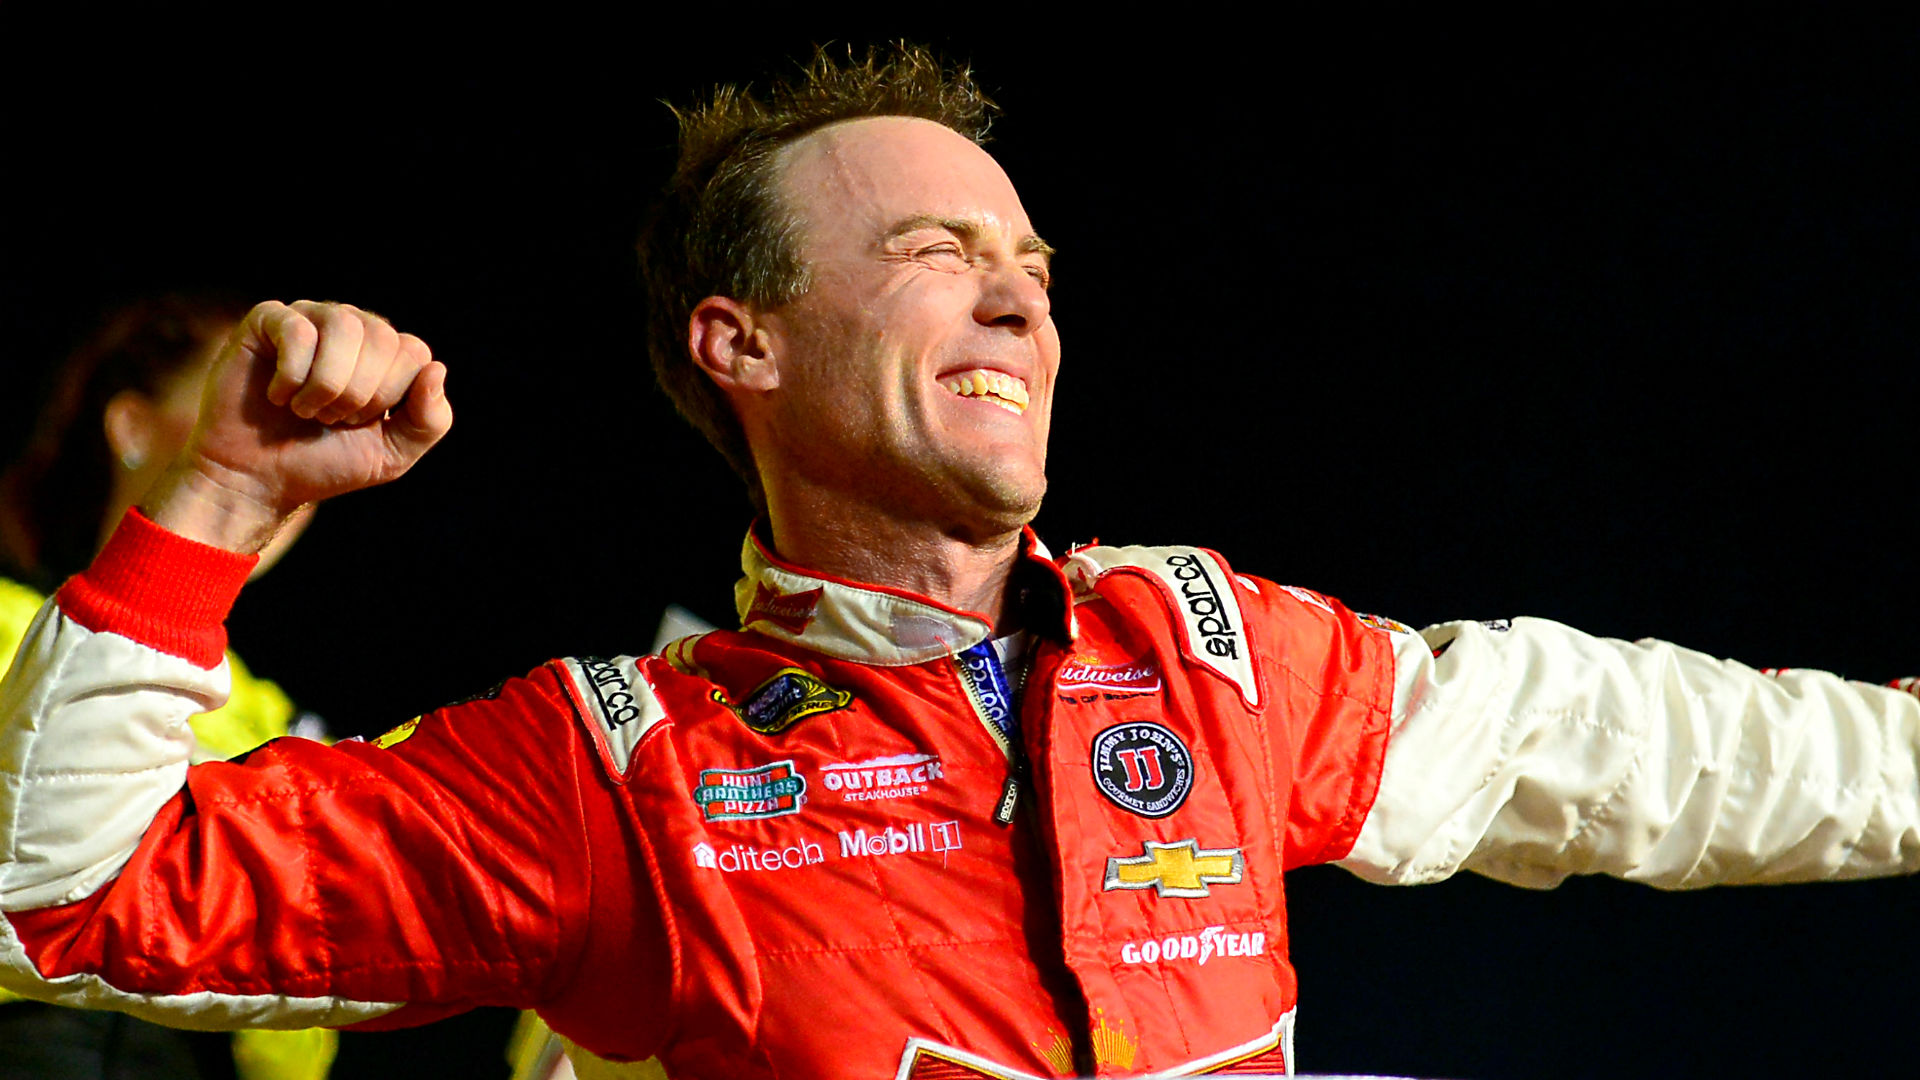 NASCAR odds and driver ratings – Harvick best-positioned to win title at Homstead-Miami